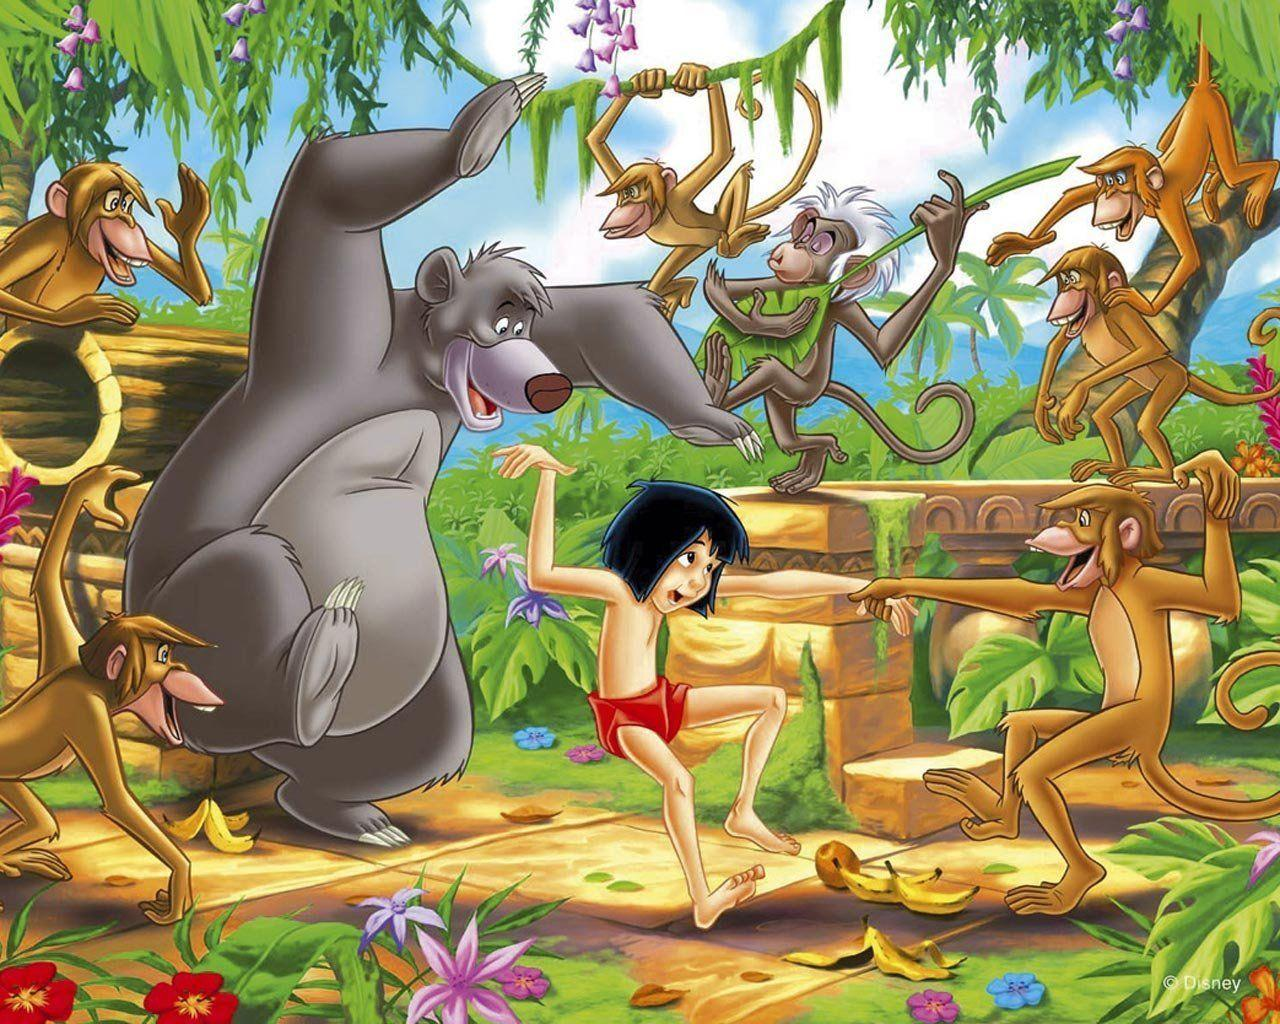 Giving jungle book its beat